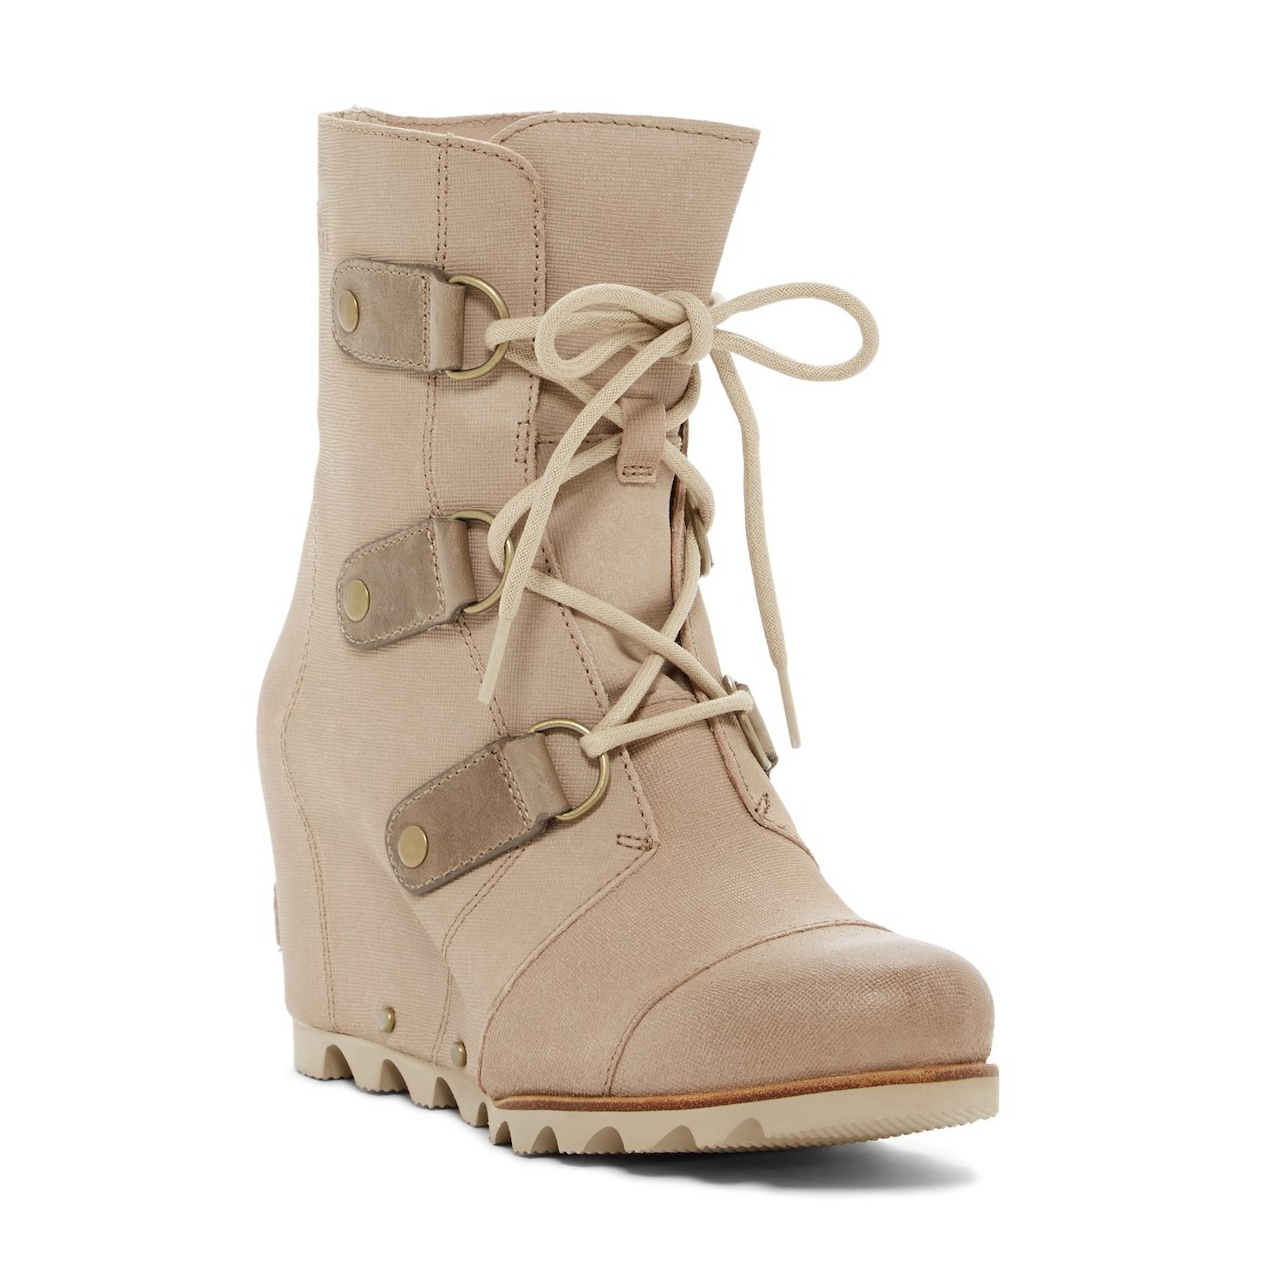 db5fa219f95 Details about Sorel Joan of Arctic Wedge Mid Oxford Tan Winter Snow Boot  Womens Size 10.5